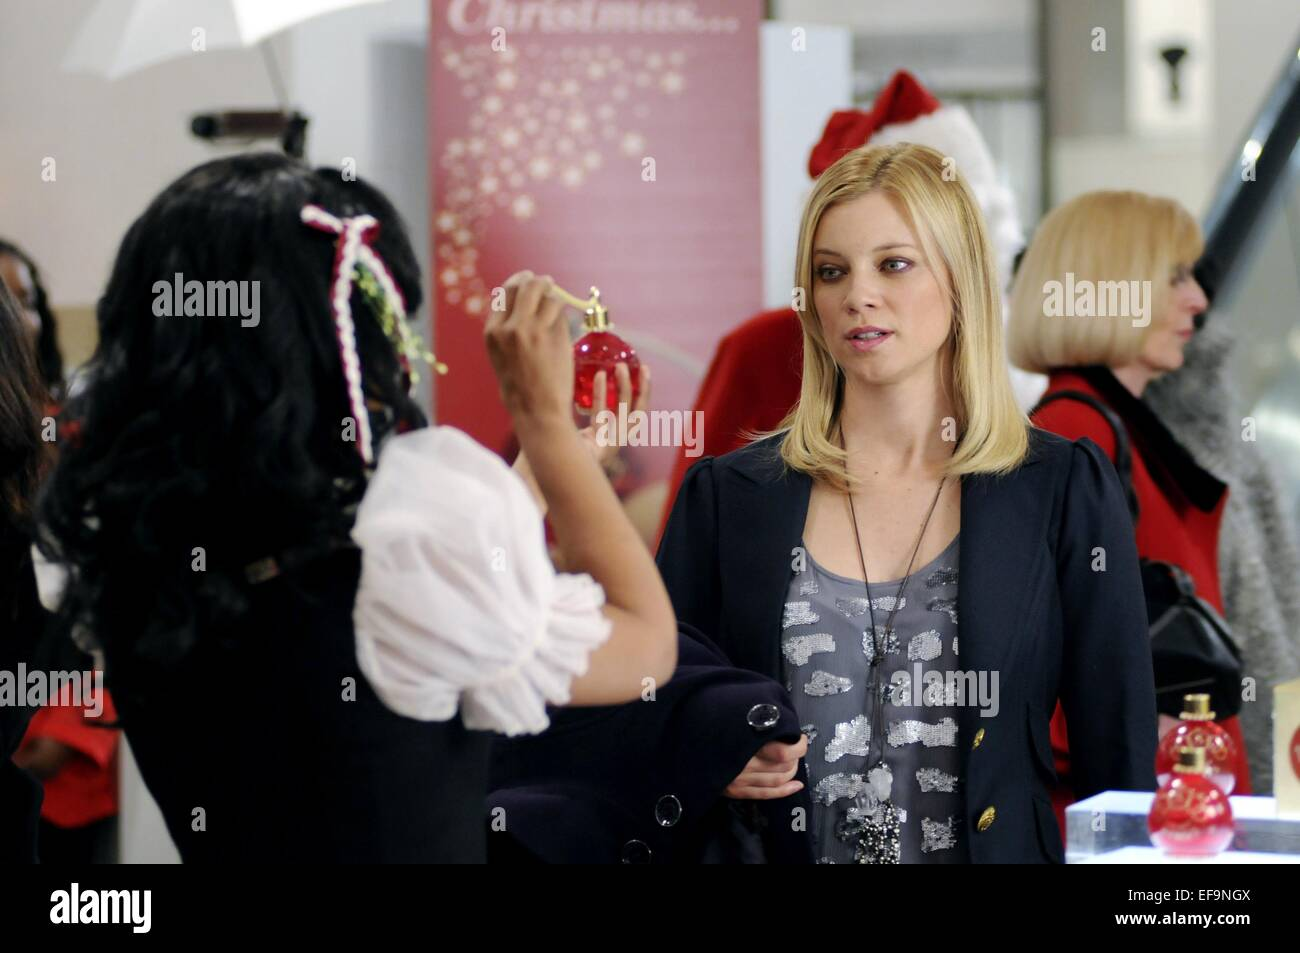 12 Dates Of Christmas.Amy Smart 12 Dates Of Christmas 2011 Stock Photo 78275818